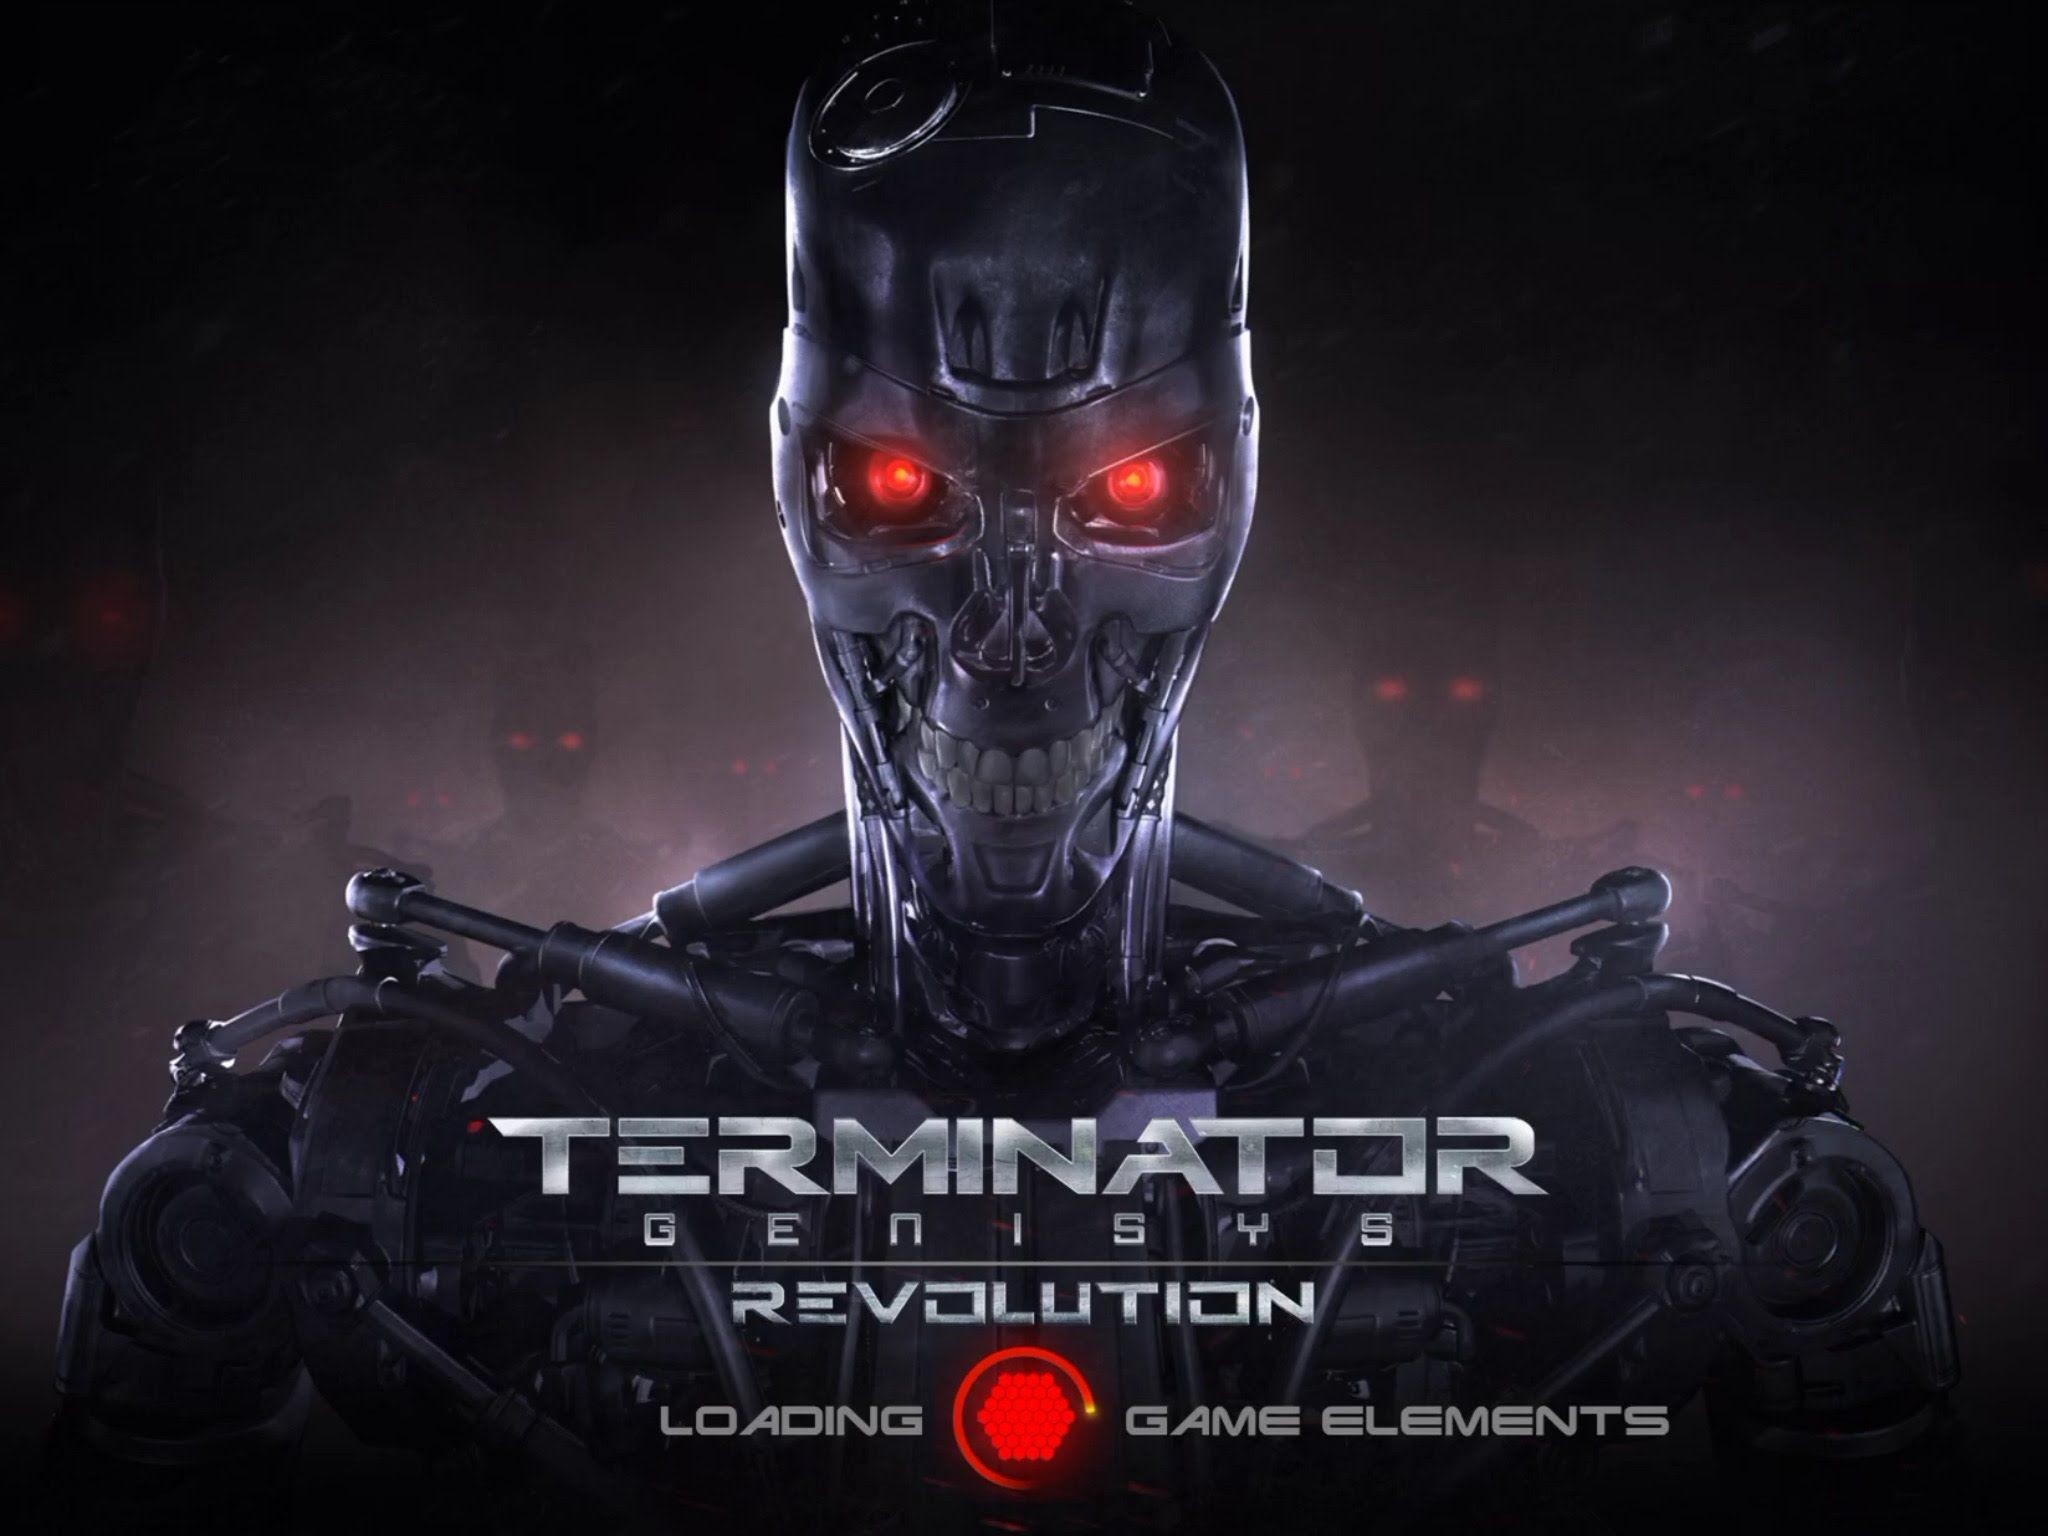 2048x1536 Terminator Genisys Movies HD k Wallpapers